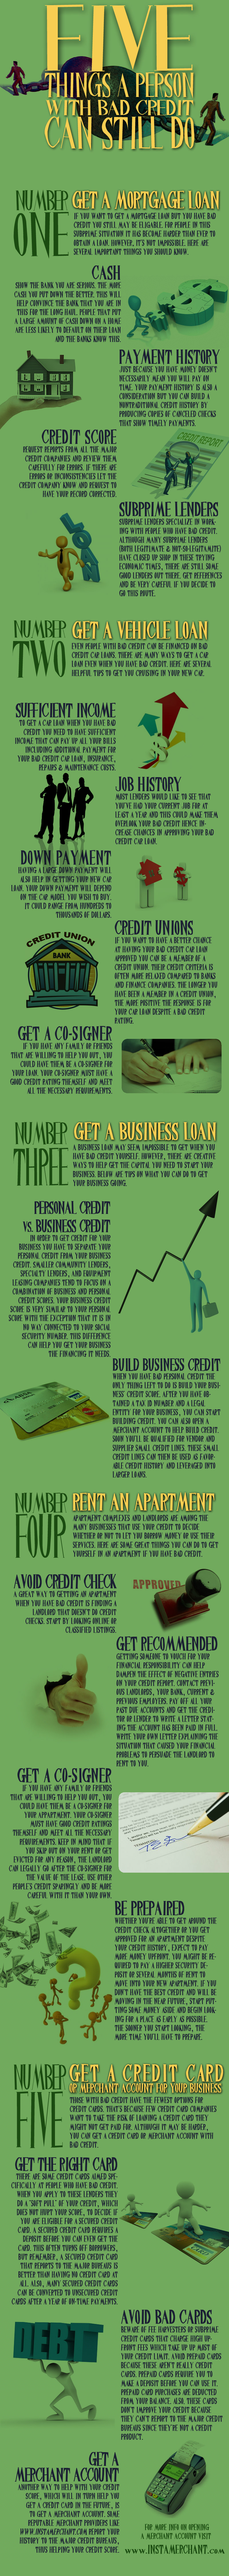 5 Things You Can Do With a Bad Credit